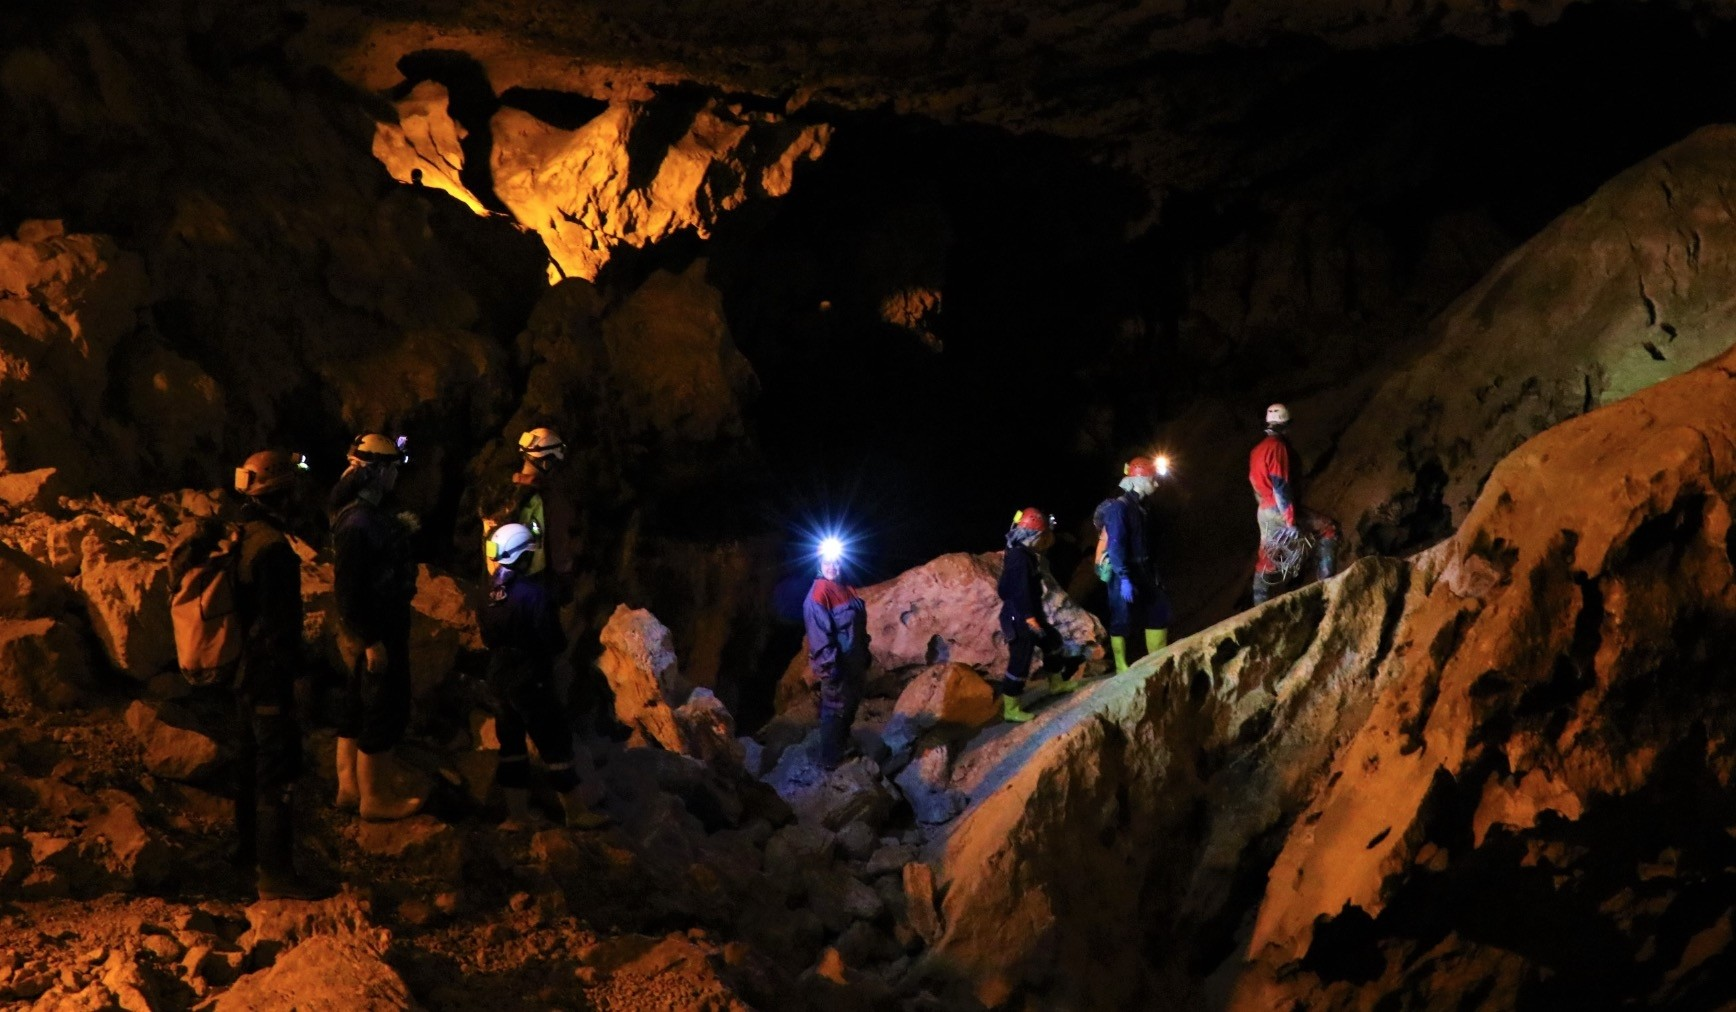 Students camped for three days and stayed in the cave for 13 hours in groups of nine, wearing coveralls, boots and hard hats and carrying carbide lamps.